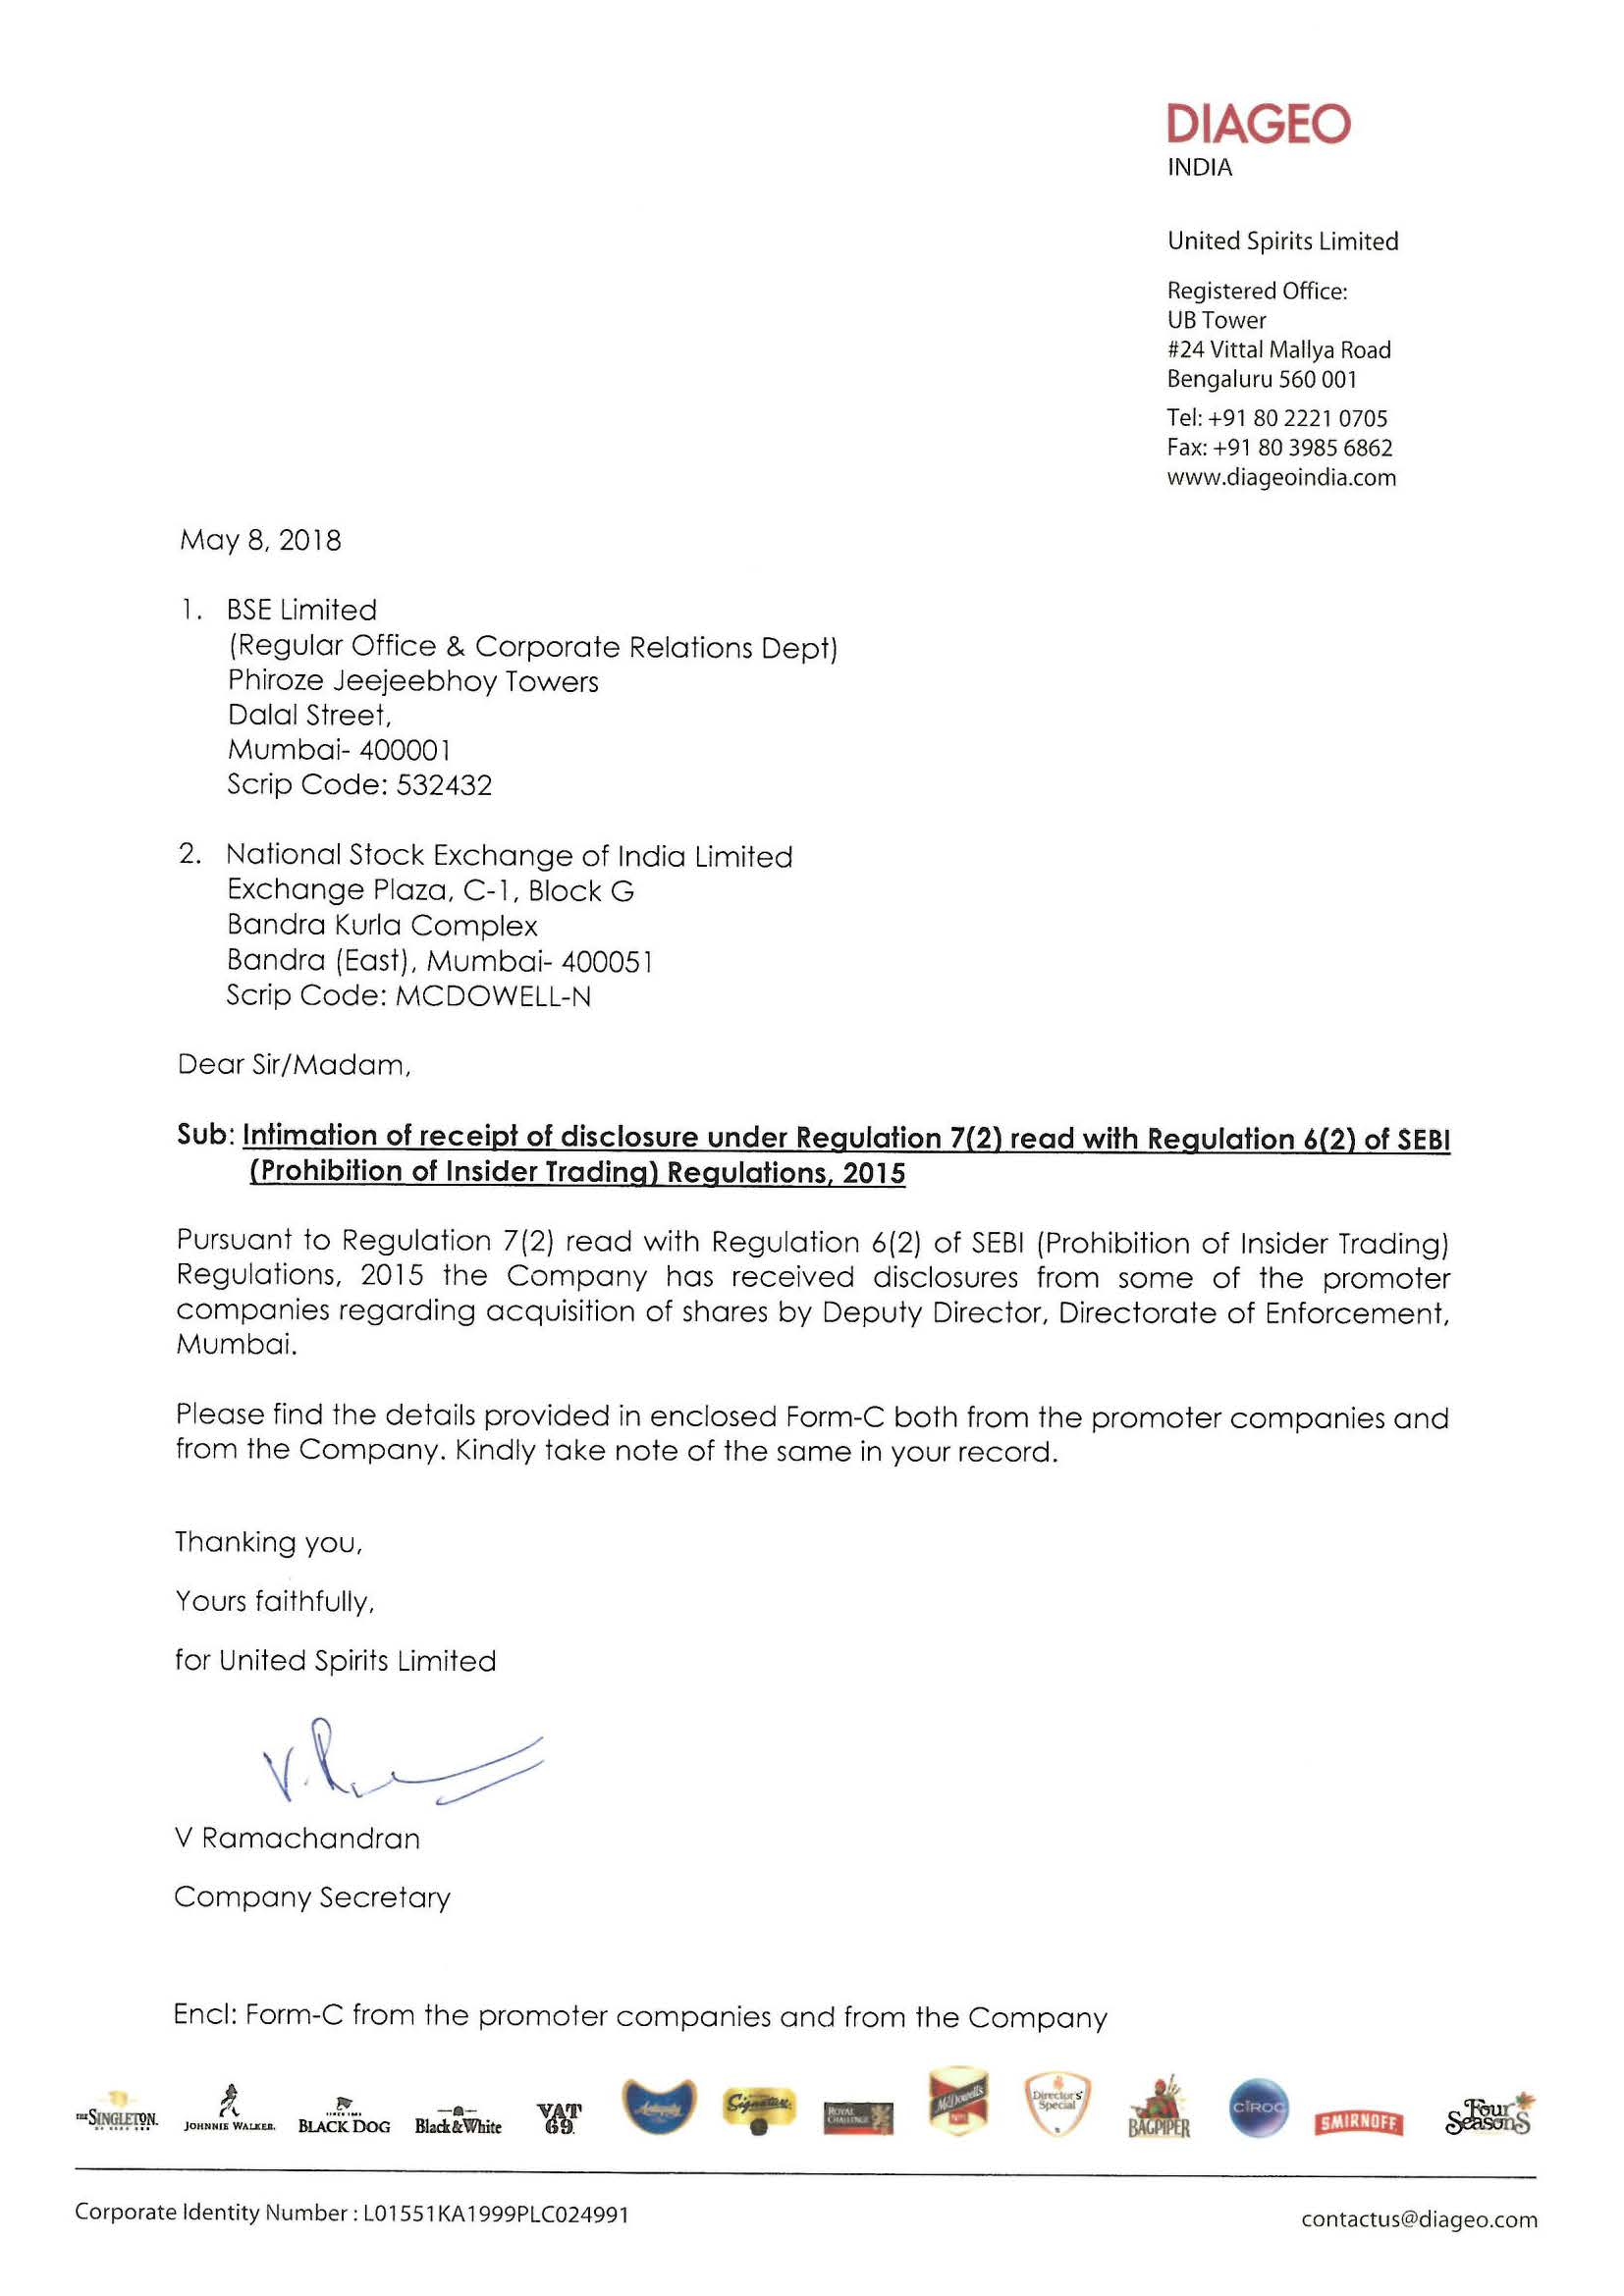 Disclosure regarding acquisition of shares by Directorate of Enforcement